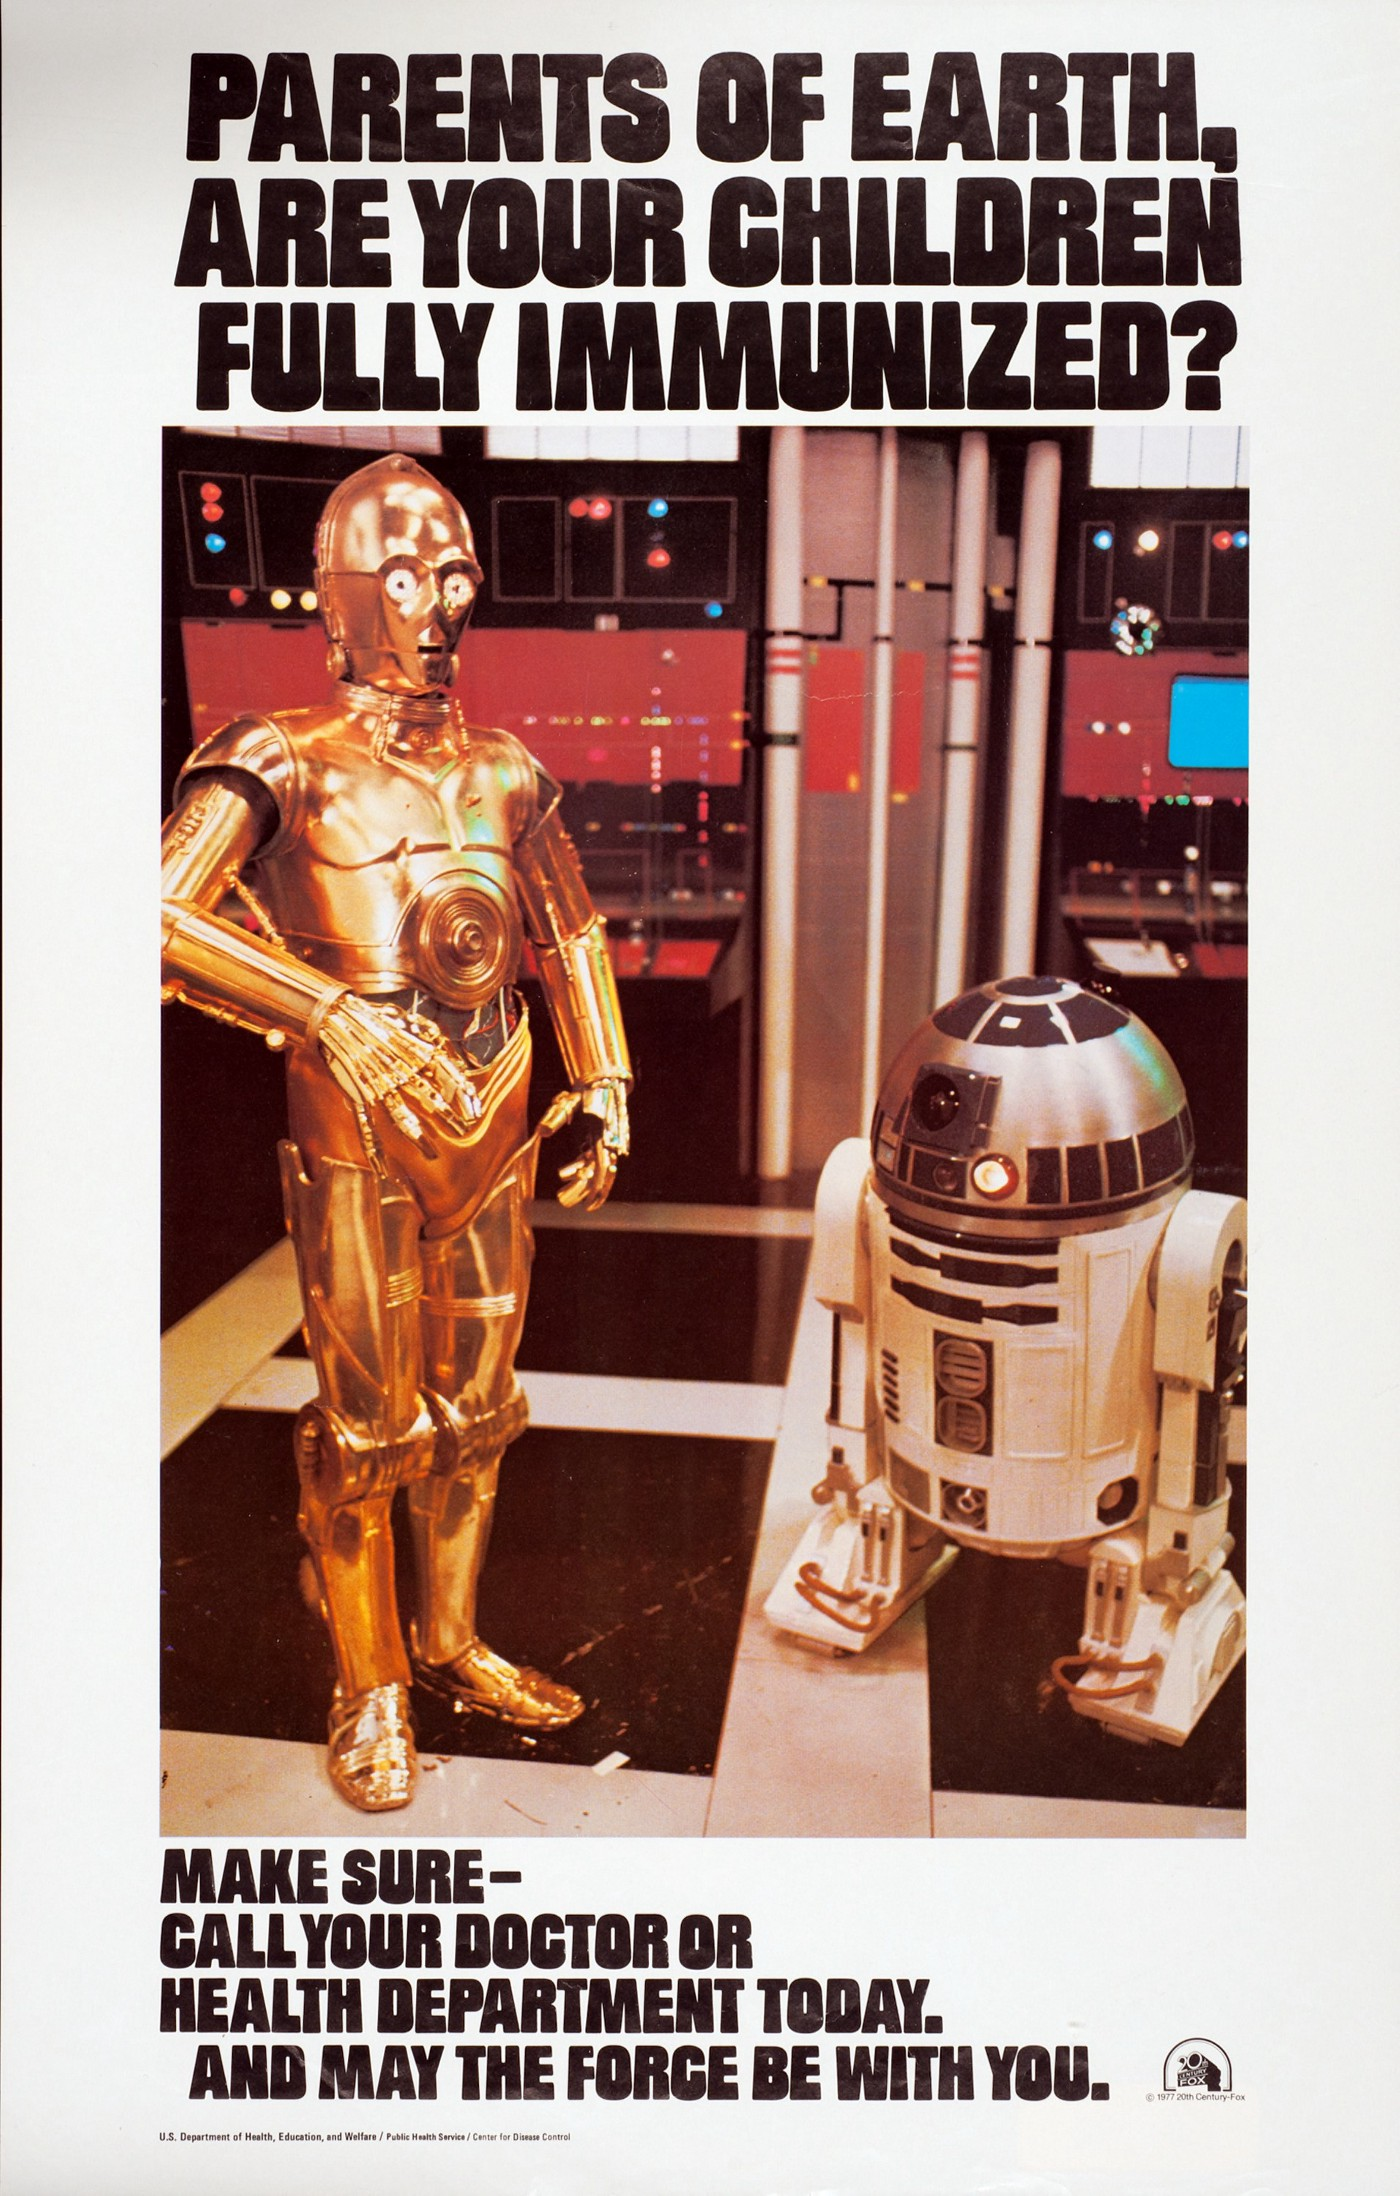 White poster with black lettering and color photo image. Image shows R2-D2 and C3PO, robotic characters from the film Star Wars, standing and surrounded by monitors and flashing equipment. Logo for 20th Century Fox in lower right corner of poster.